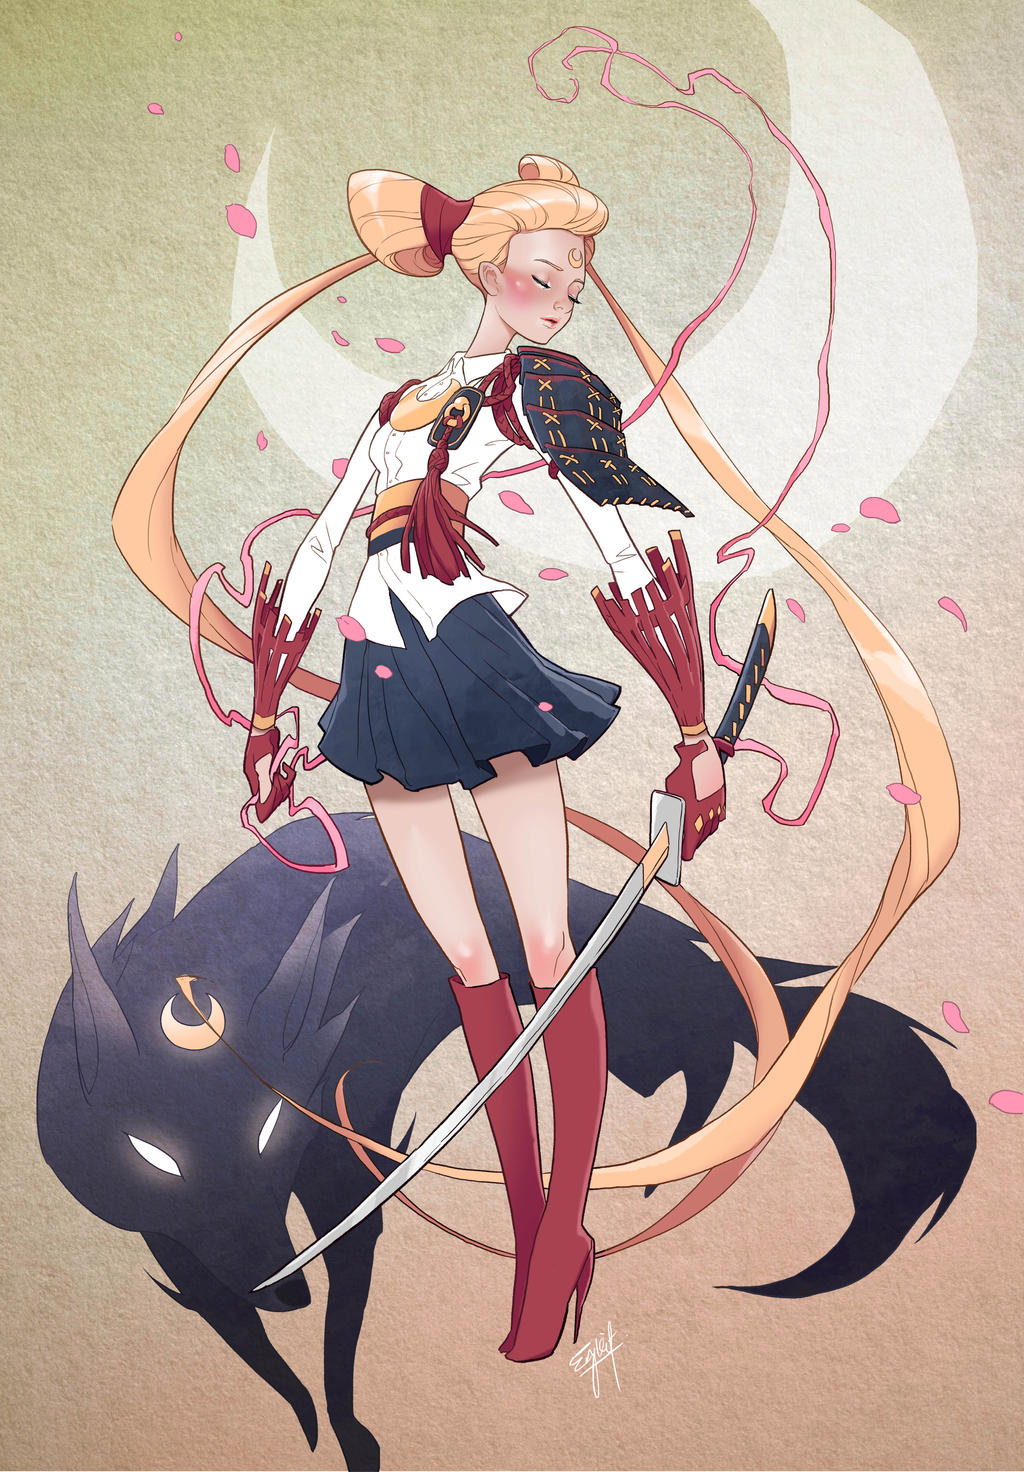 Anime Character Design Challenge : Character design challenge sailormoon by engkit on deviantart